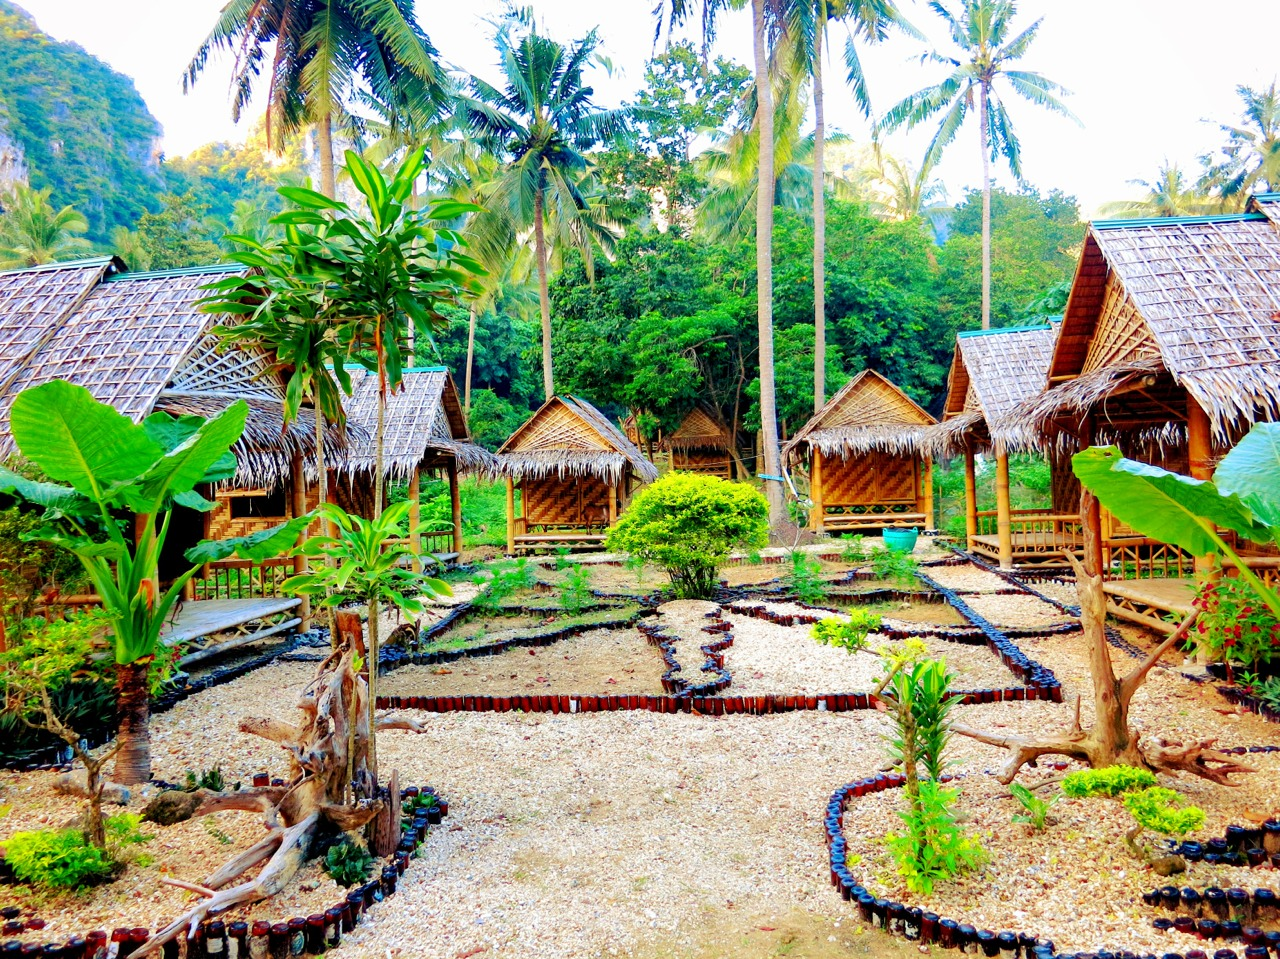 Head over to Tonsai beach for cheaper accommodation.